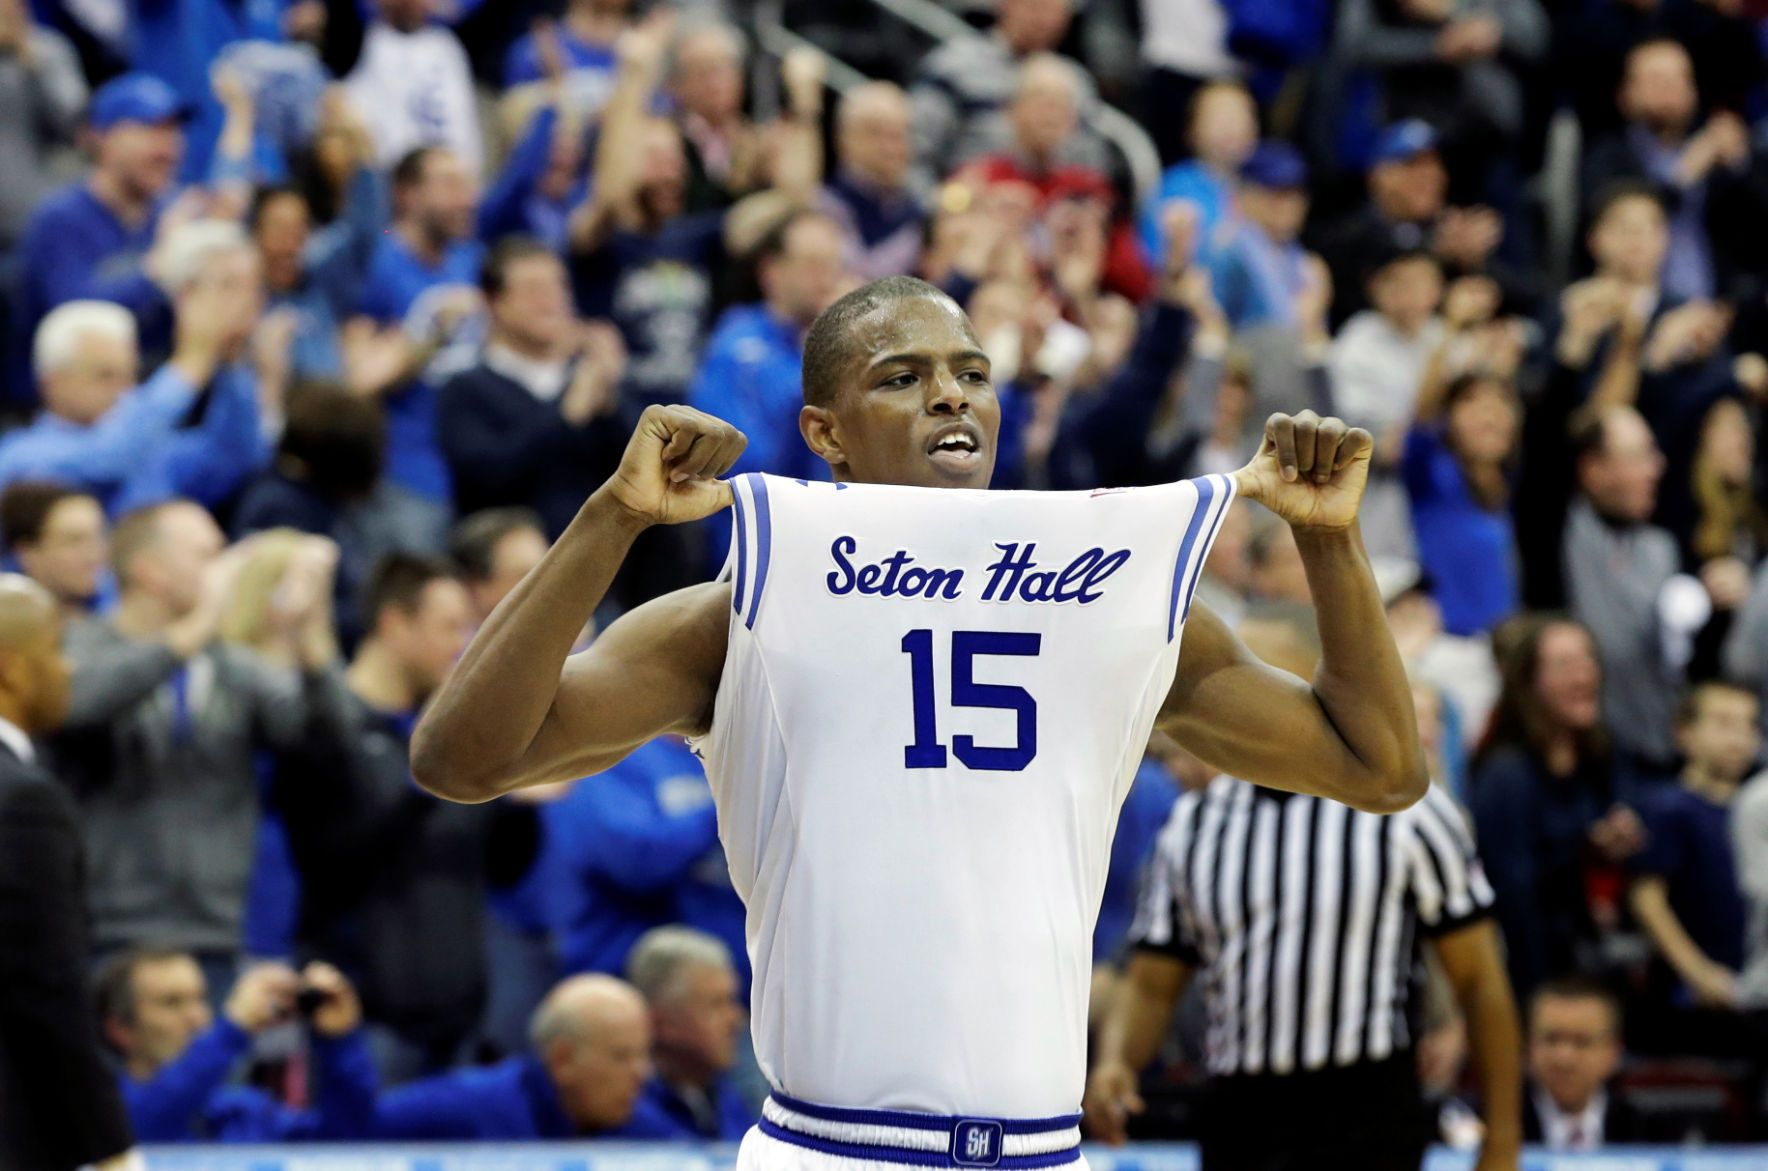 Seton Hall comes surging into Madison Square Garden after